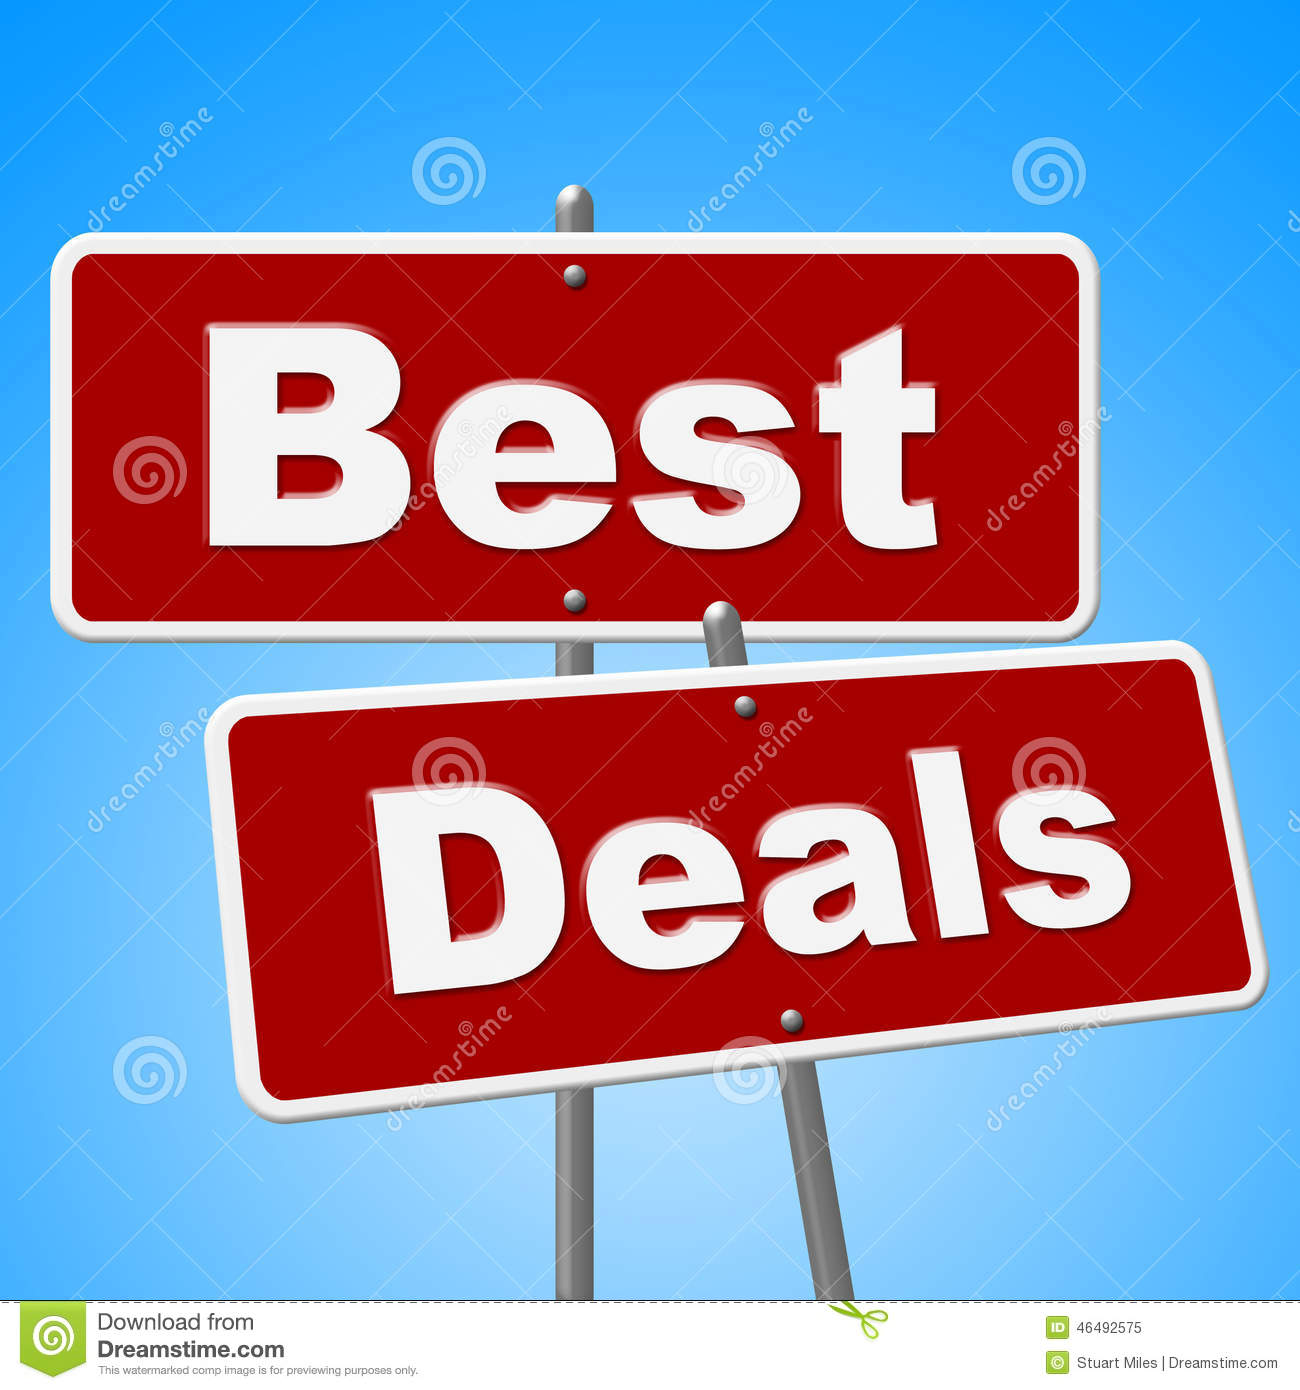 best deals tablet mean low prices or amazing offers